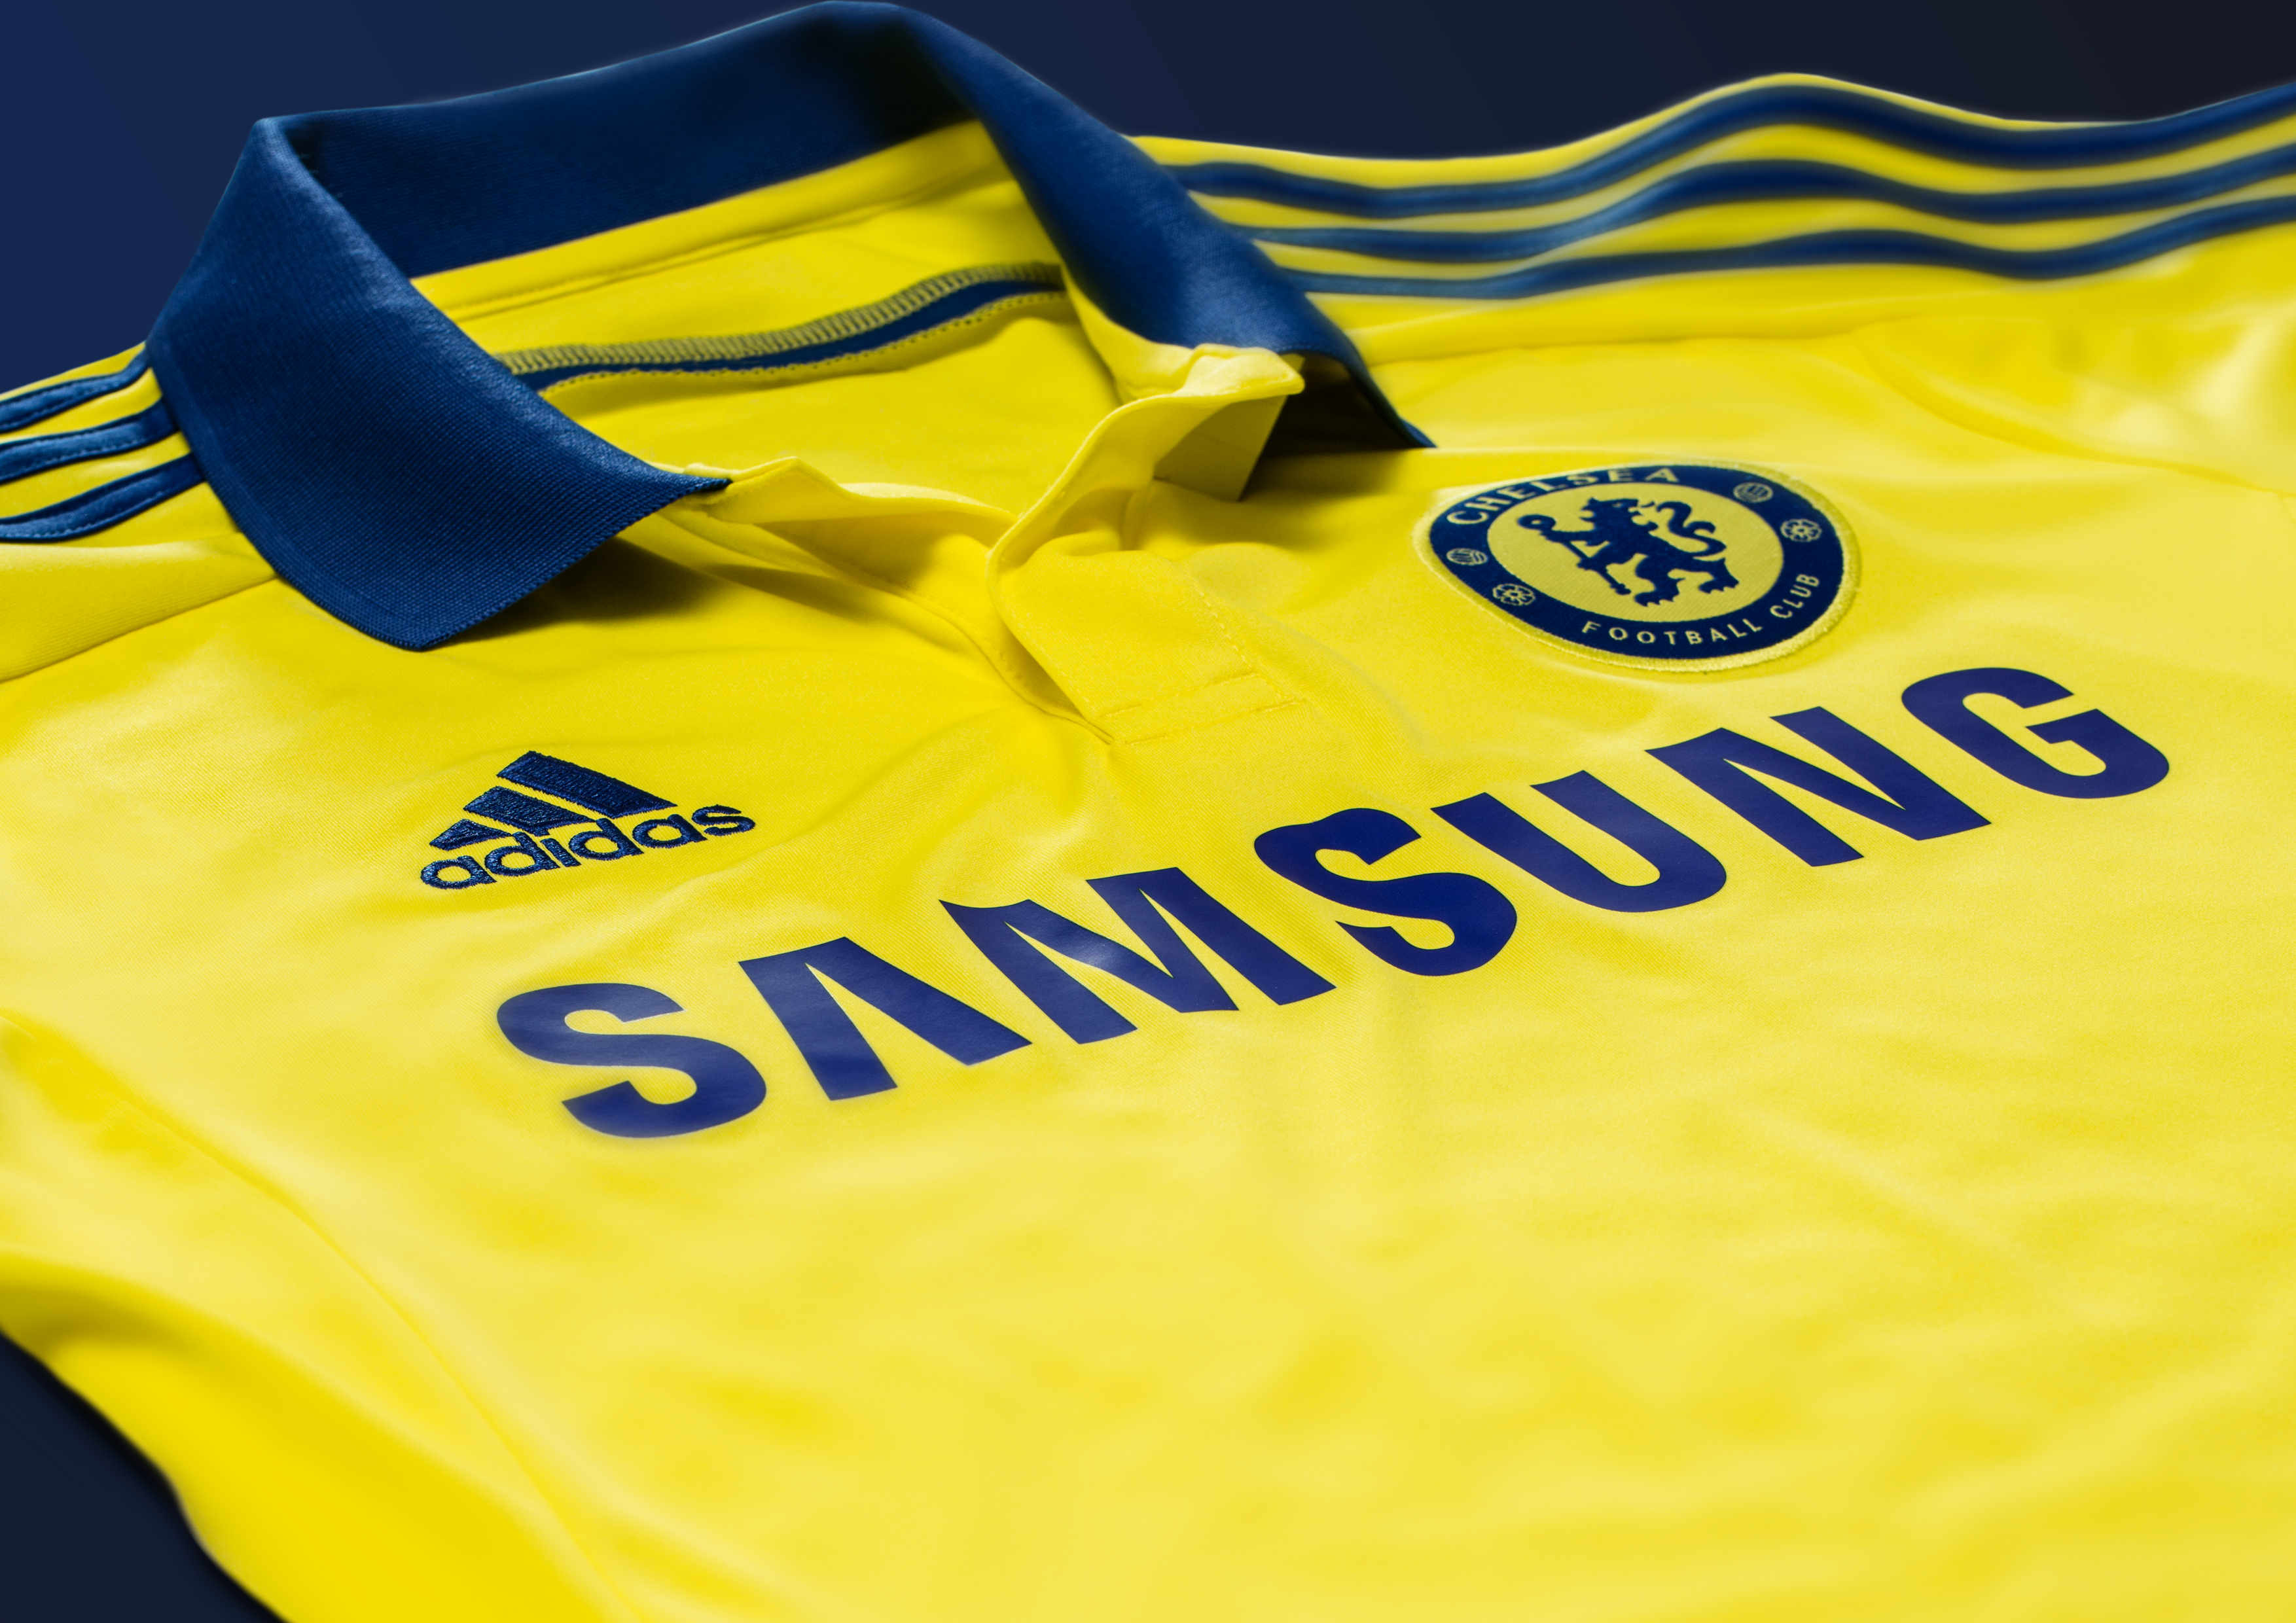 New 2014 15 Chelsea Away Kit by adidas  95f19325a